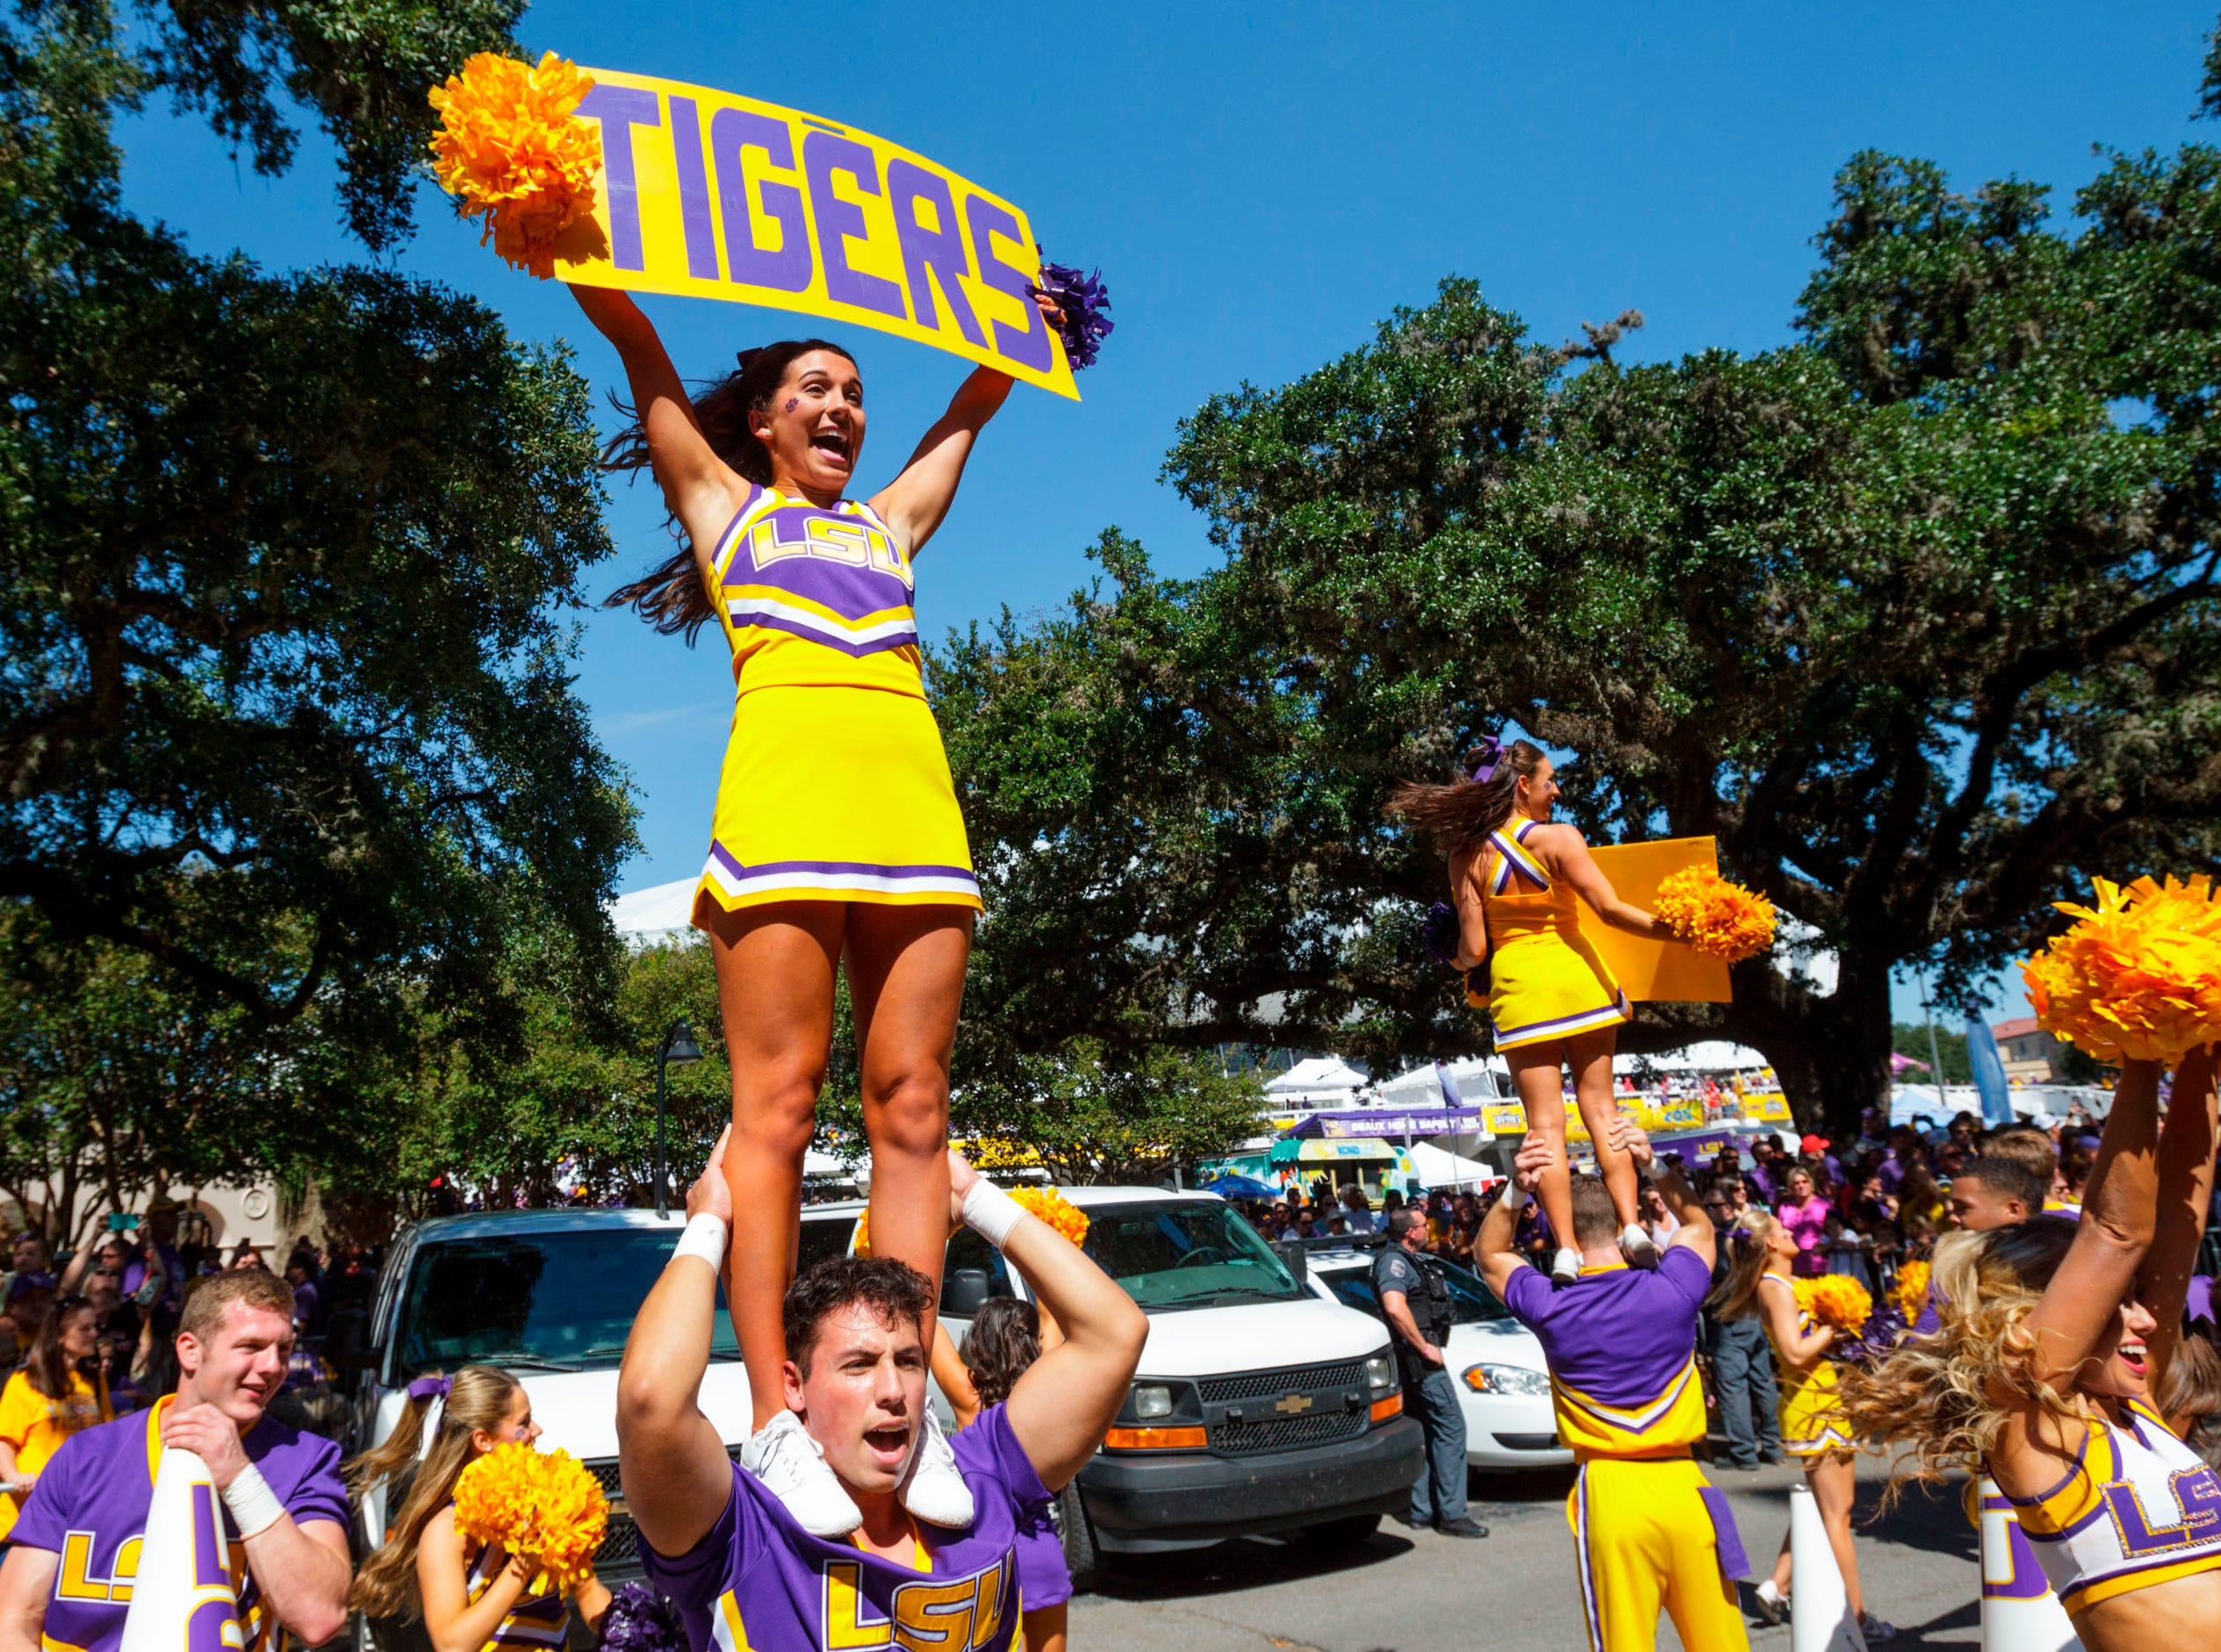 The LSU cheerleaders perform before an NCAA college football against Georgia in Baton Rouge, La., Saturday, Oct. 13, 2018. (AP Photo/Matthew Hinton)